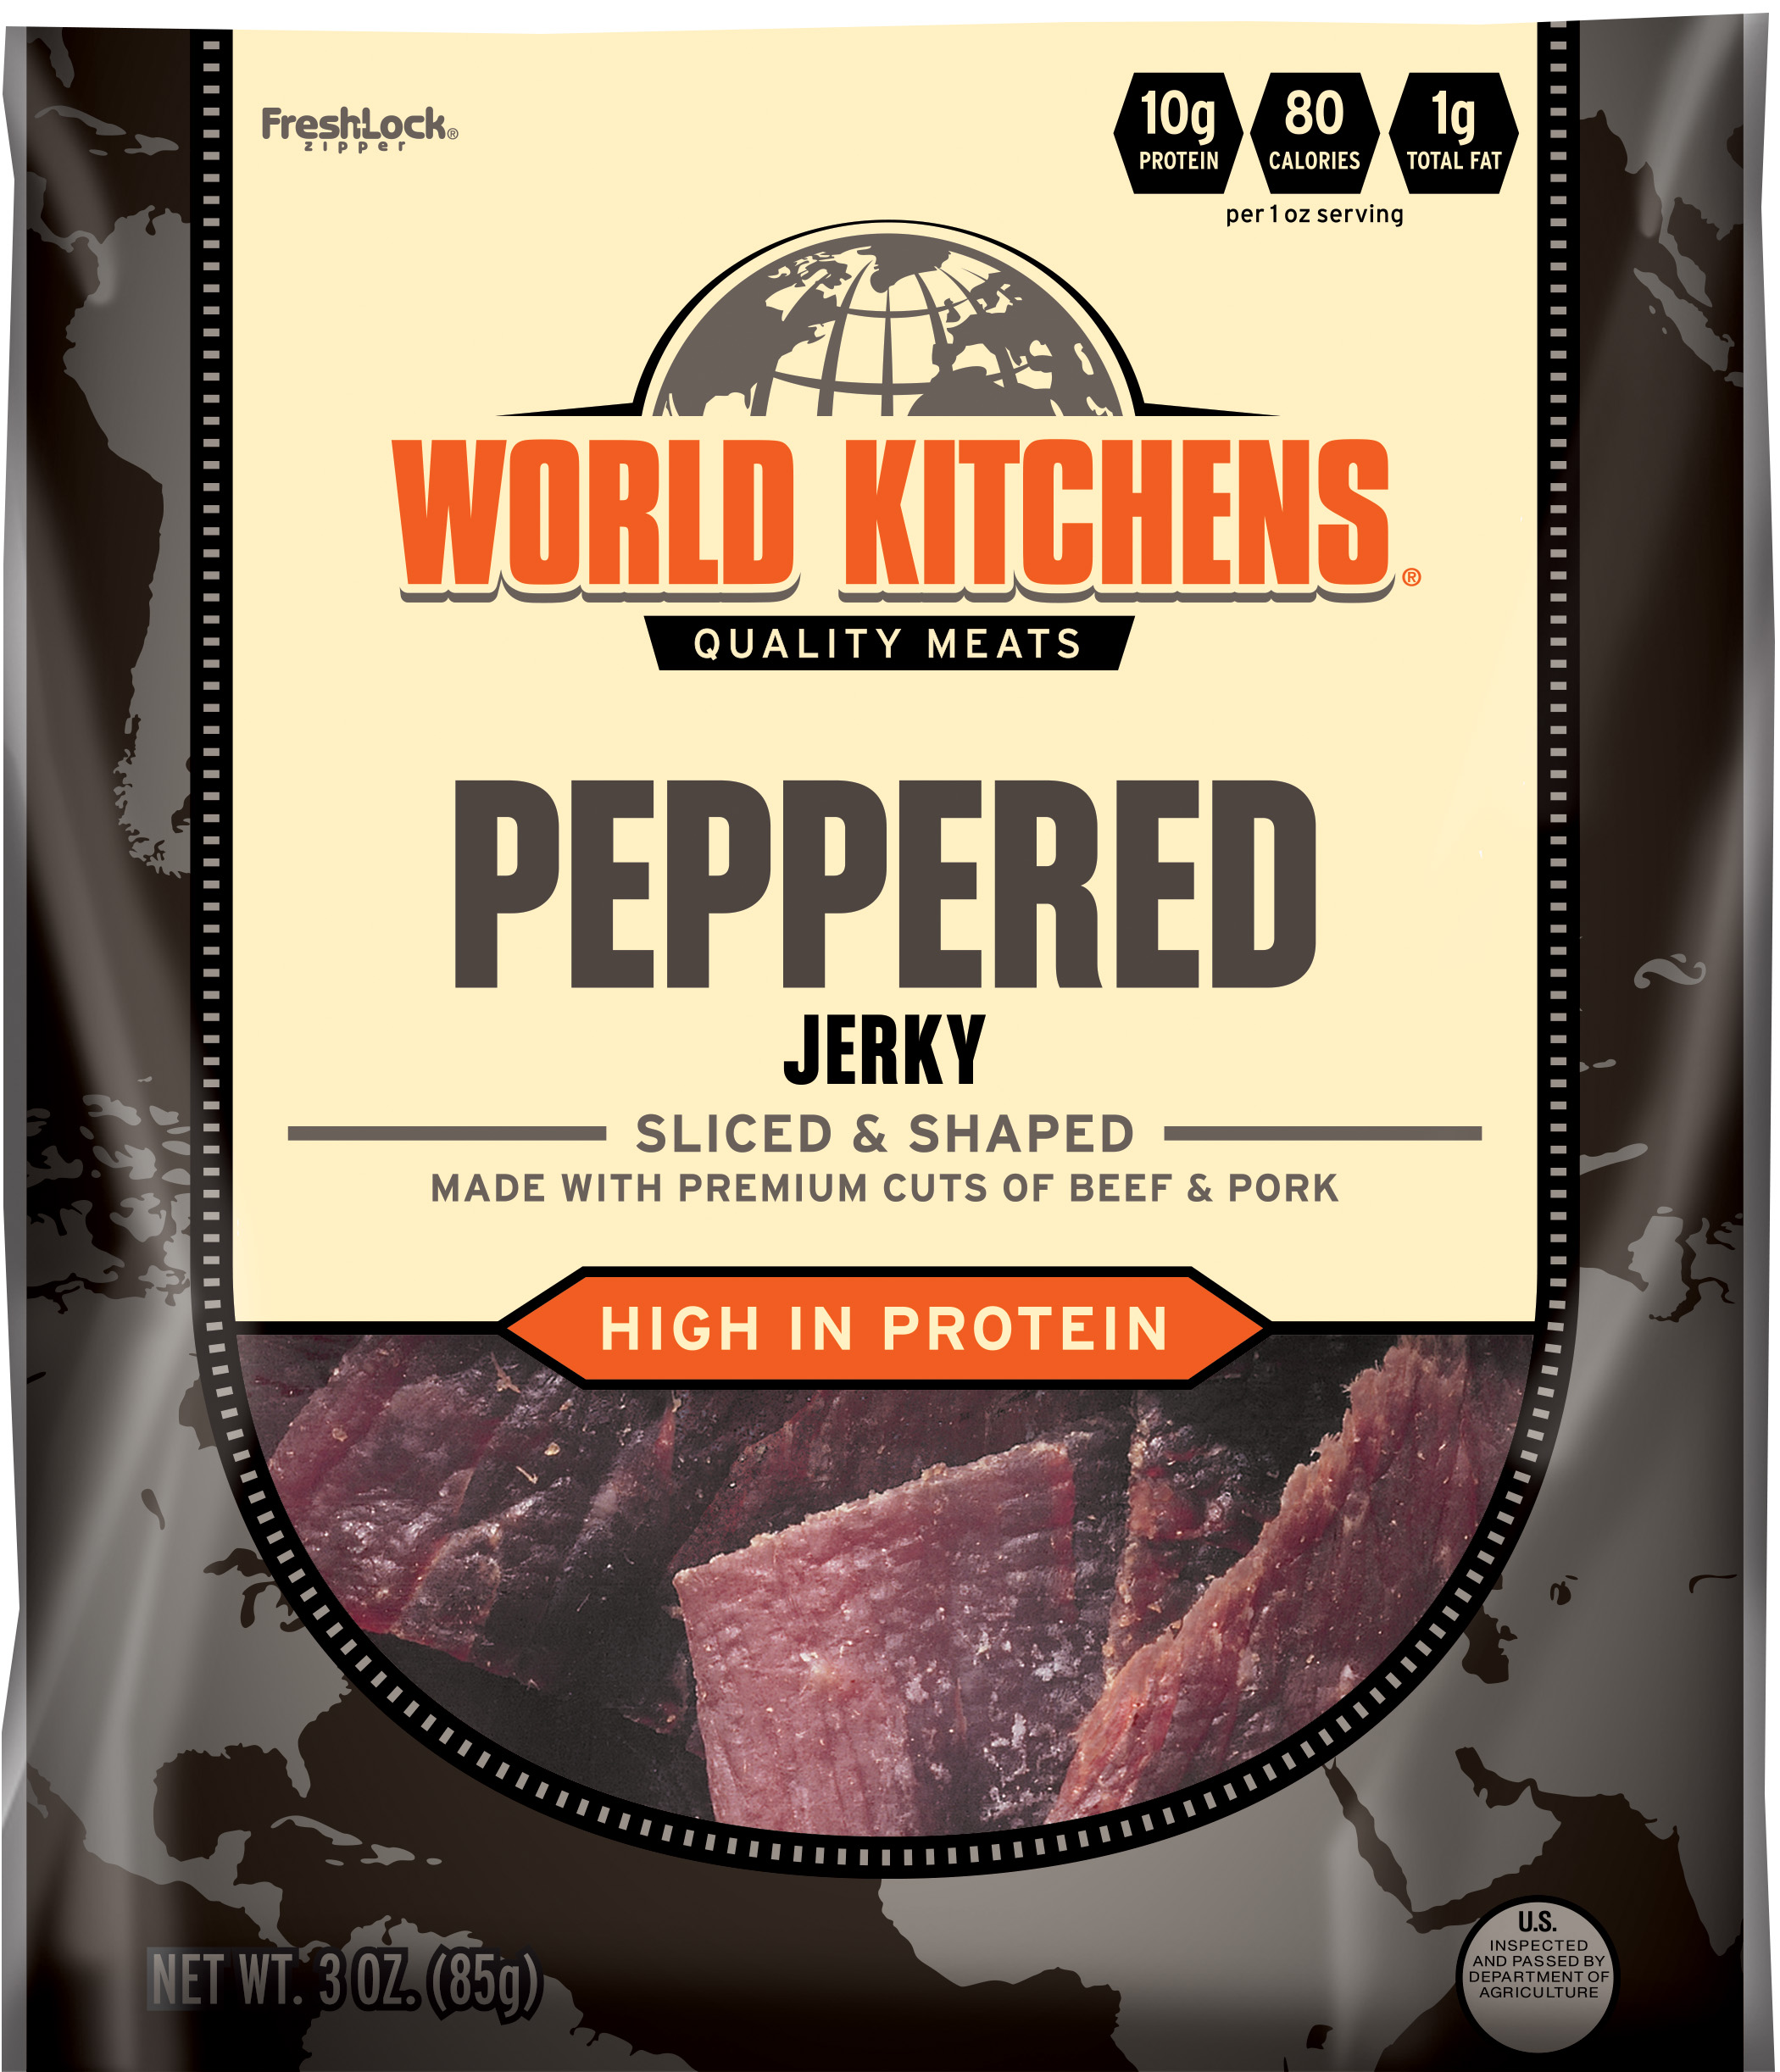 World Kitchens Peppered Jerky